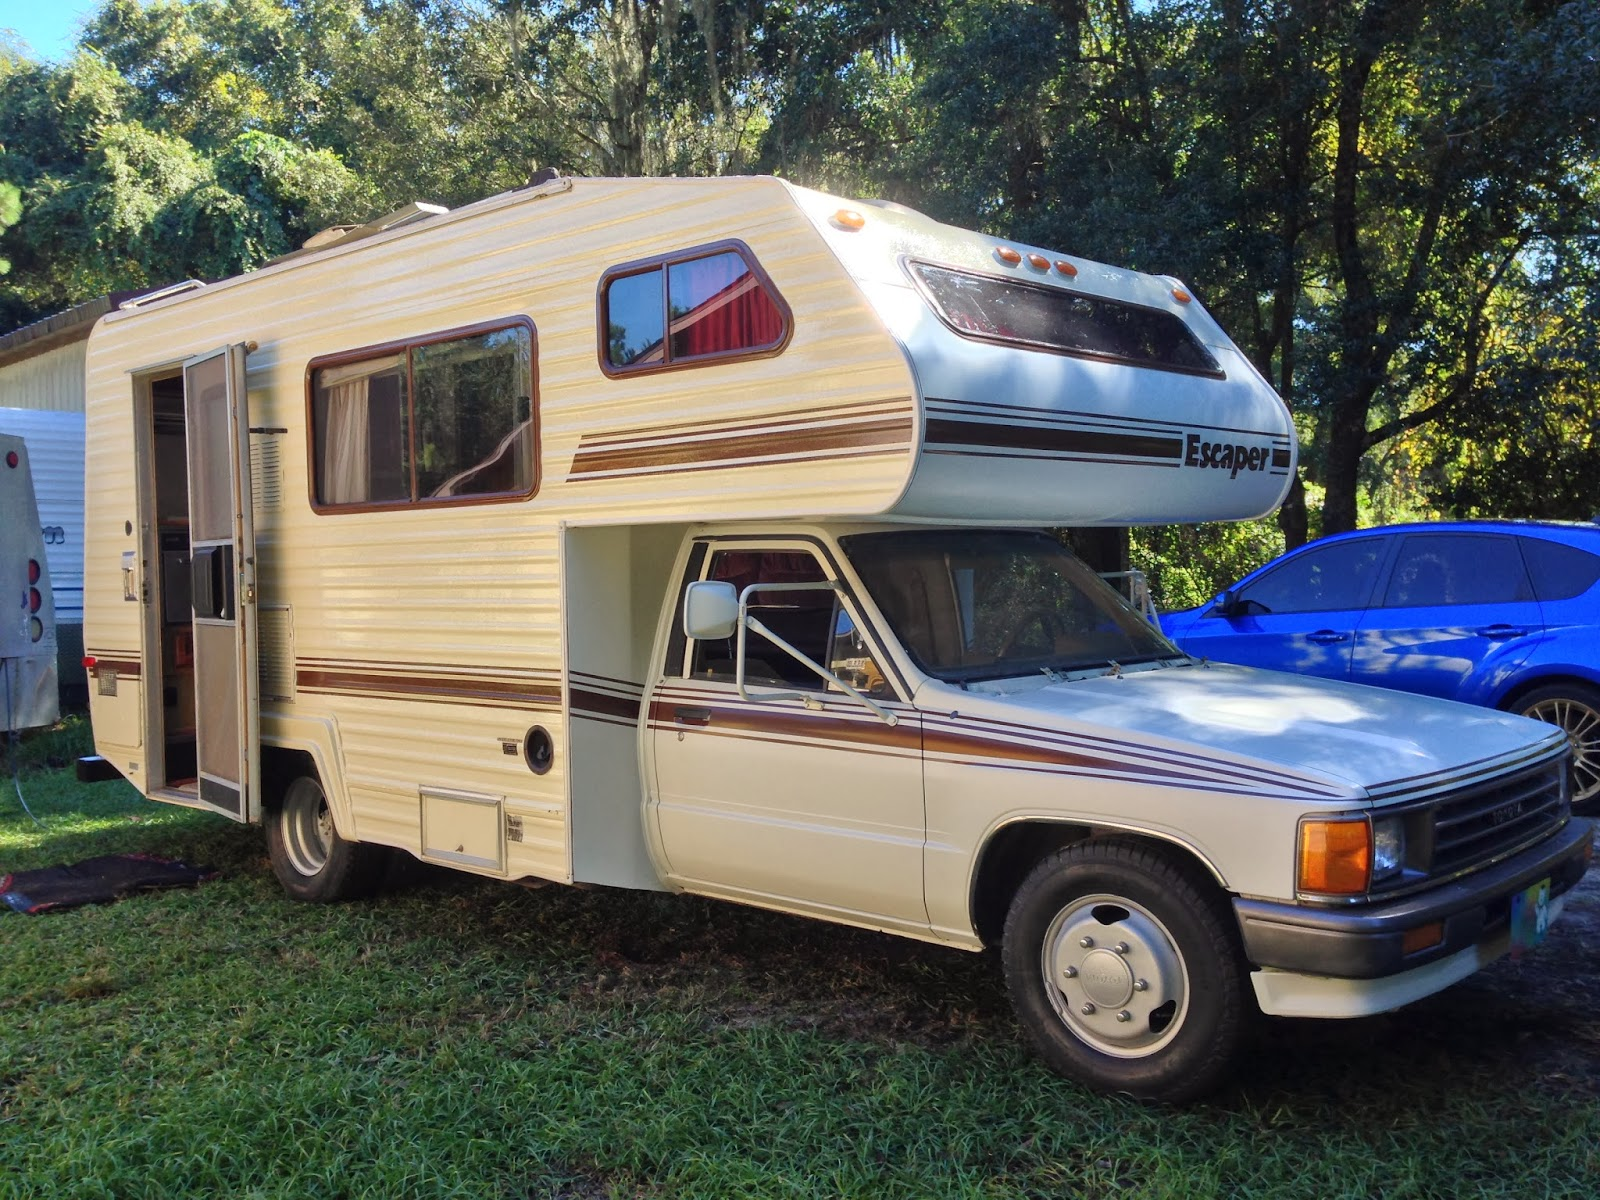 If you plan on driving a 1987 motorhome across the country, you